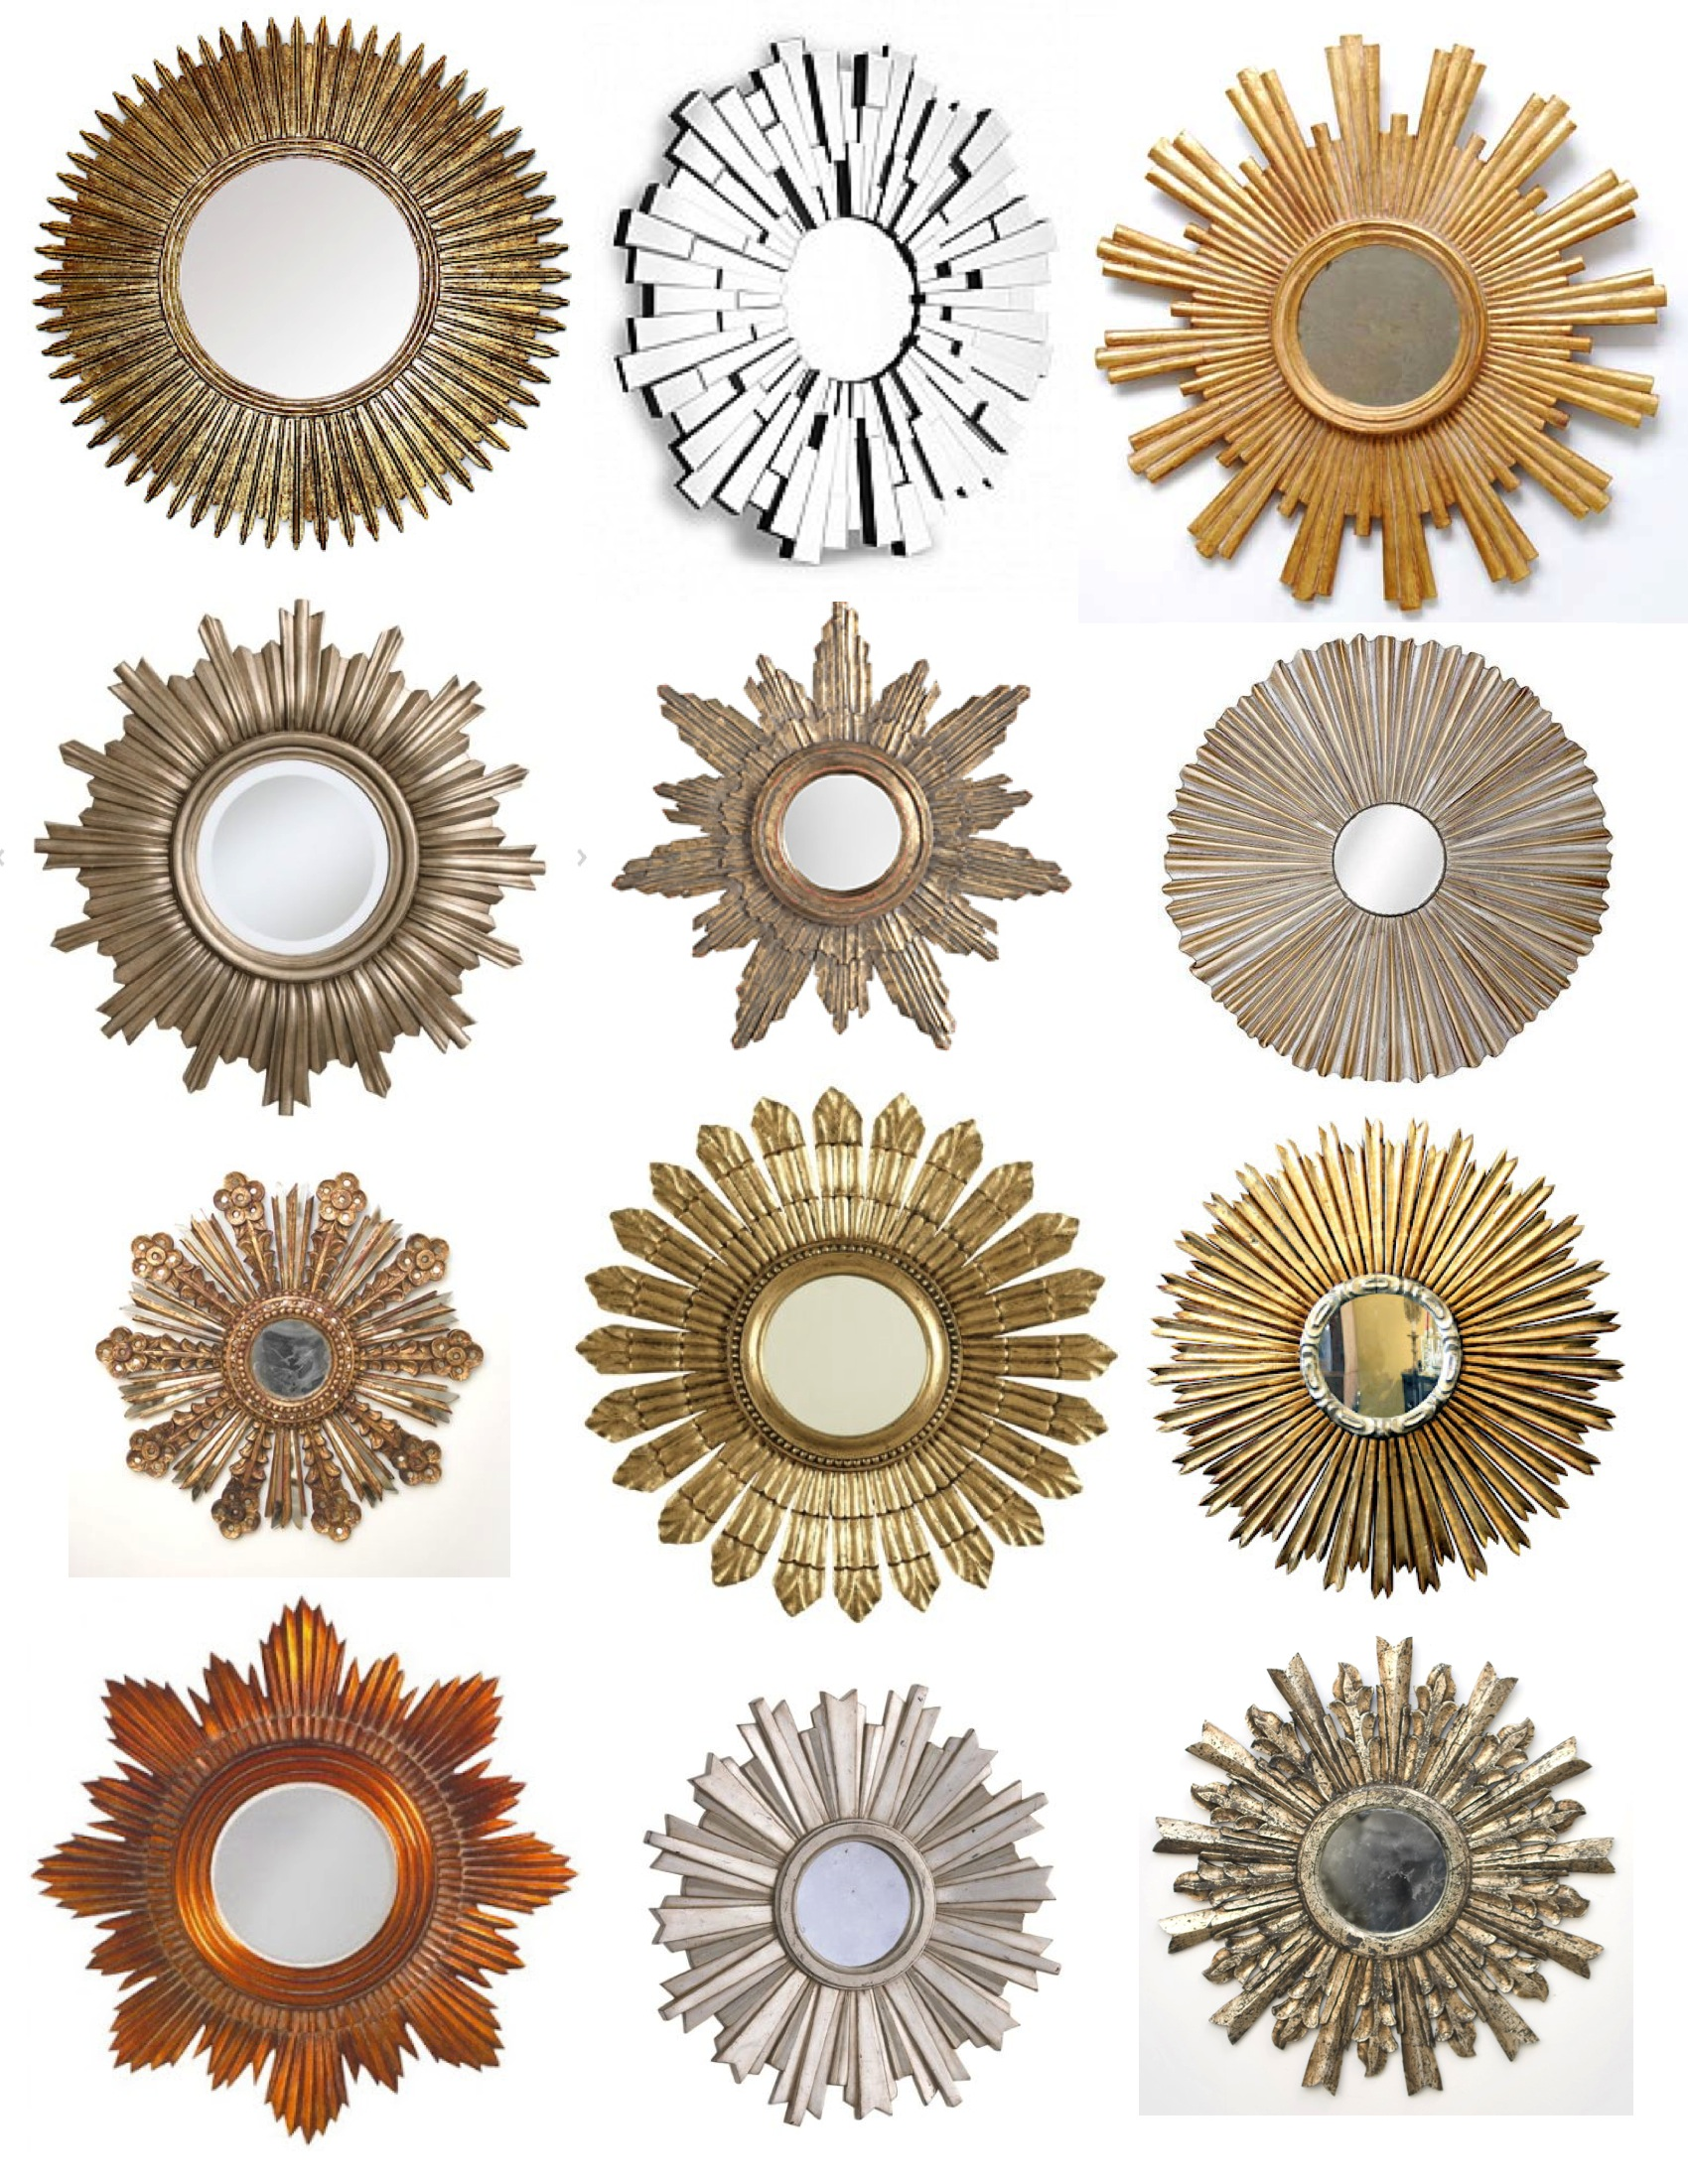 Starbust Mirror | Antique Gold Sunburst Mirror | Martha Stewart Sunburst Mirror